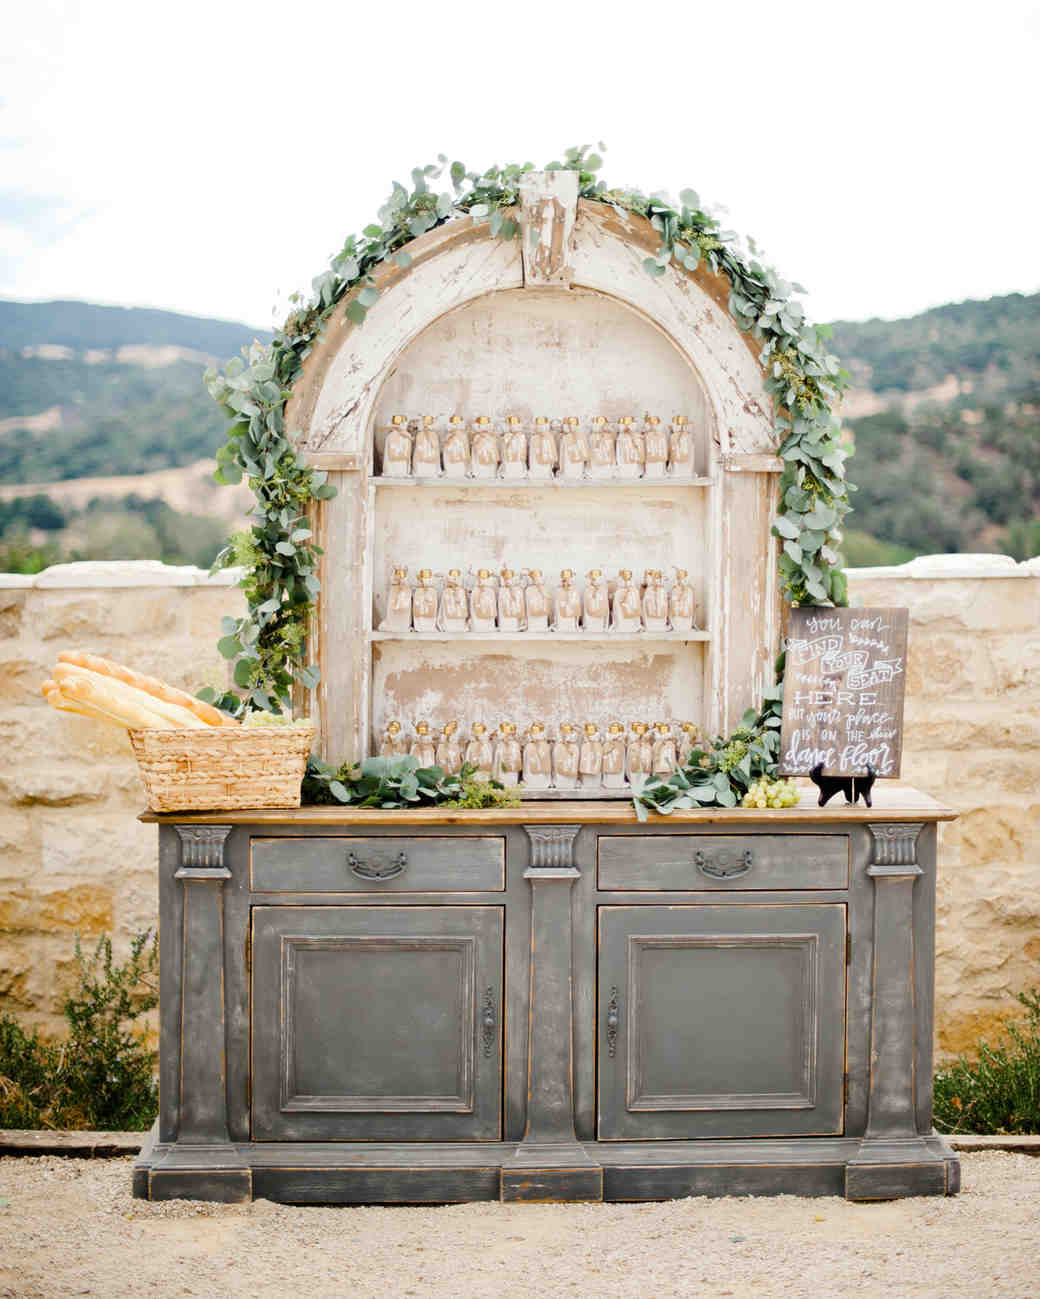 Country Rustic Wedding Altars: 26 Rustic Wedding Ideas That Still Feel Elevated